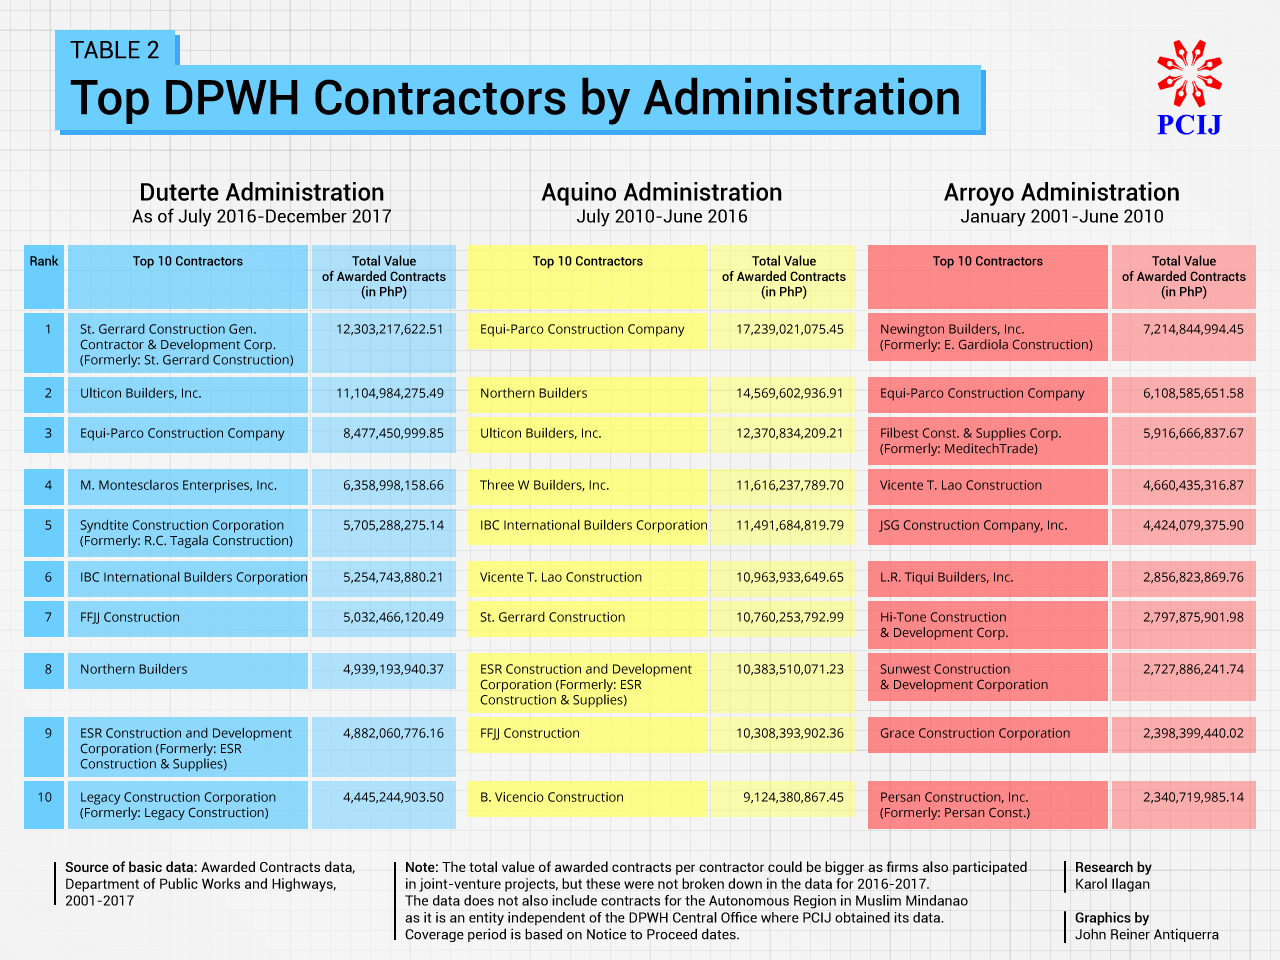 TOP 10. This table shows the Top 10 contractors that have been awarded contracts under the government's infrastructure program u00e2u0080u0093 some of which provided services to past administrations as well. PCIJ graphic.